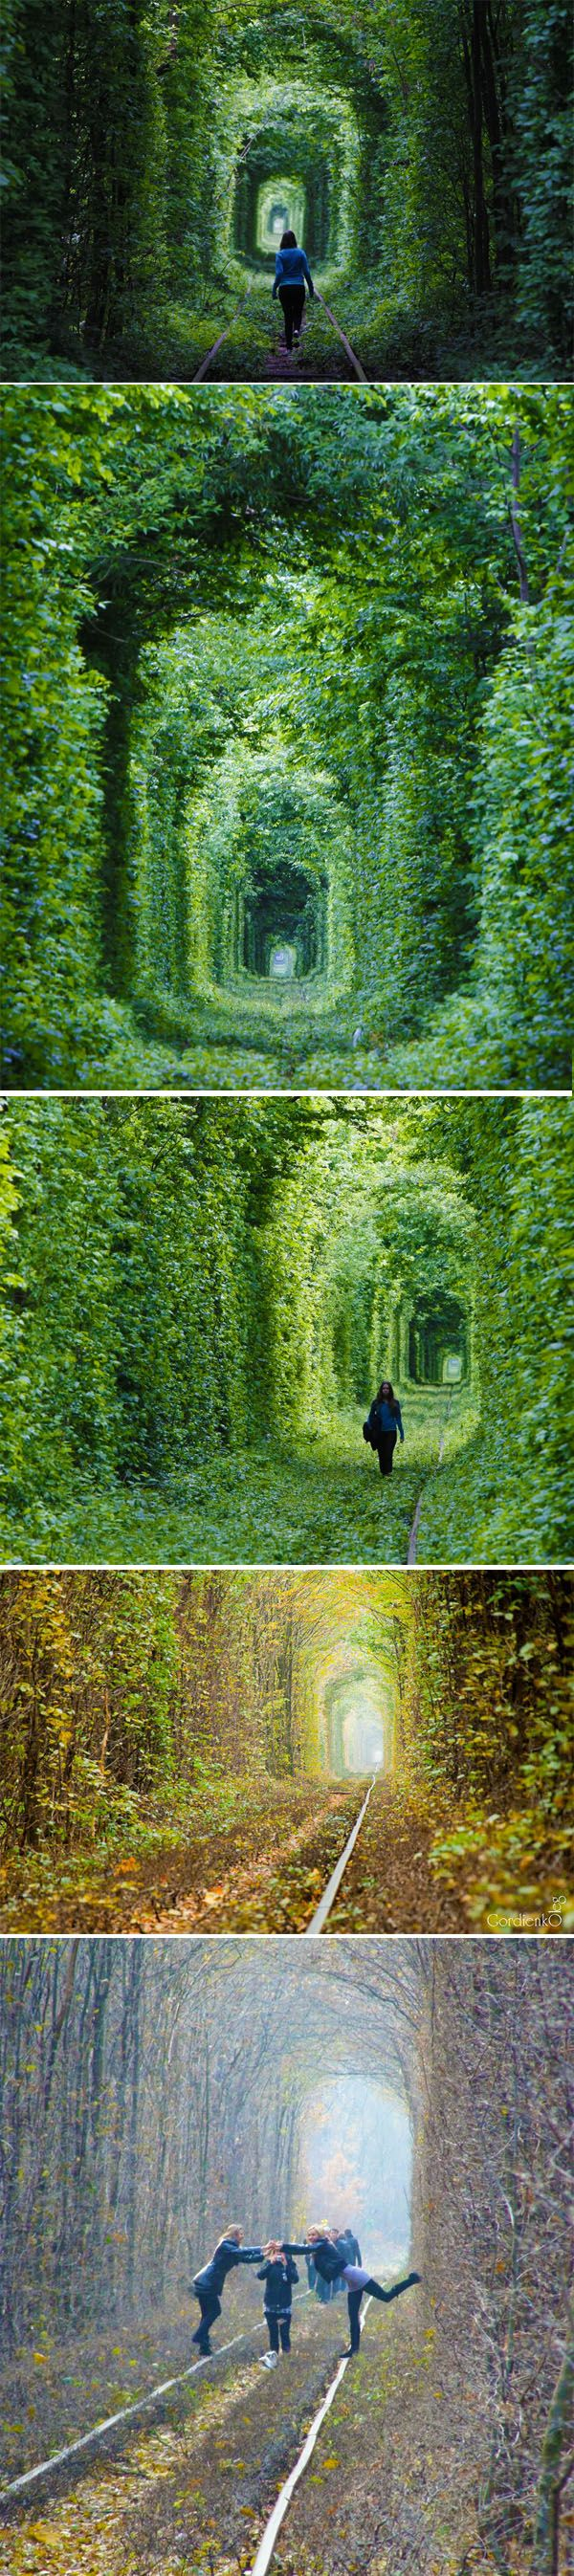 "Tunnel of Love"" :: located in Kleven, Ukraine (Yet, another odd and unique place on earth.)"